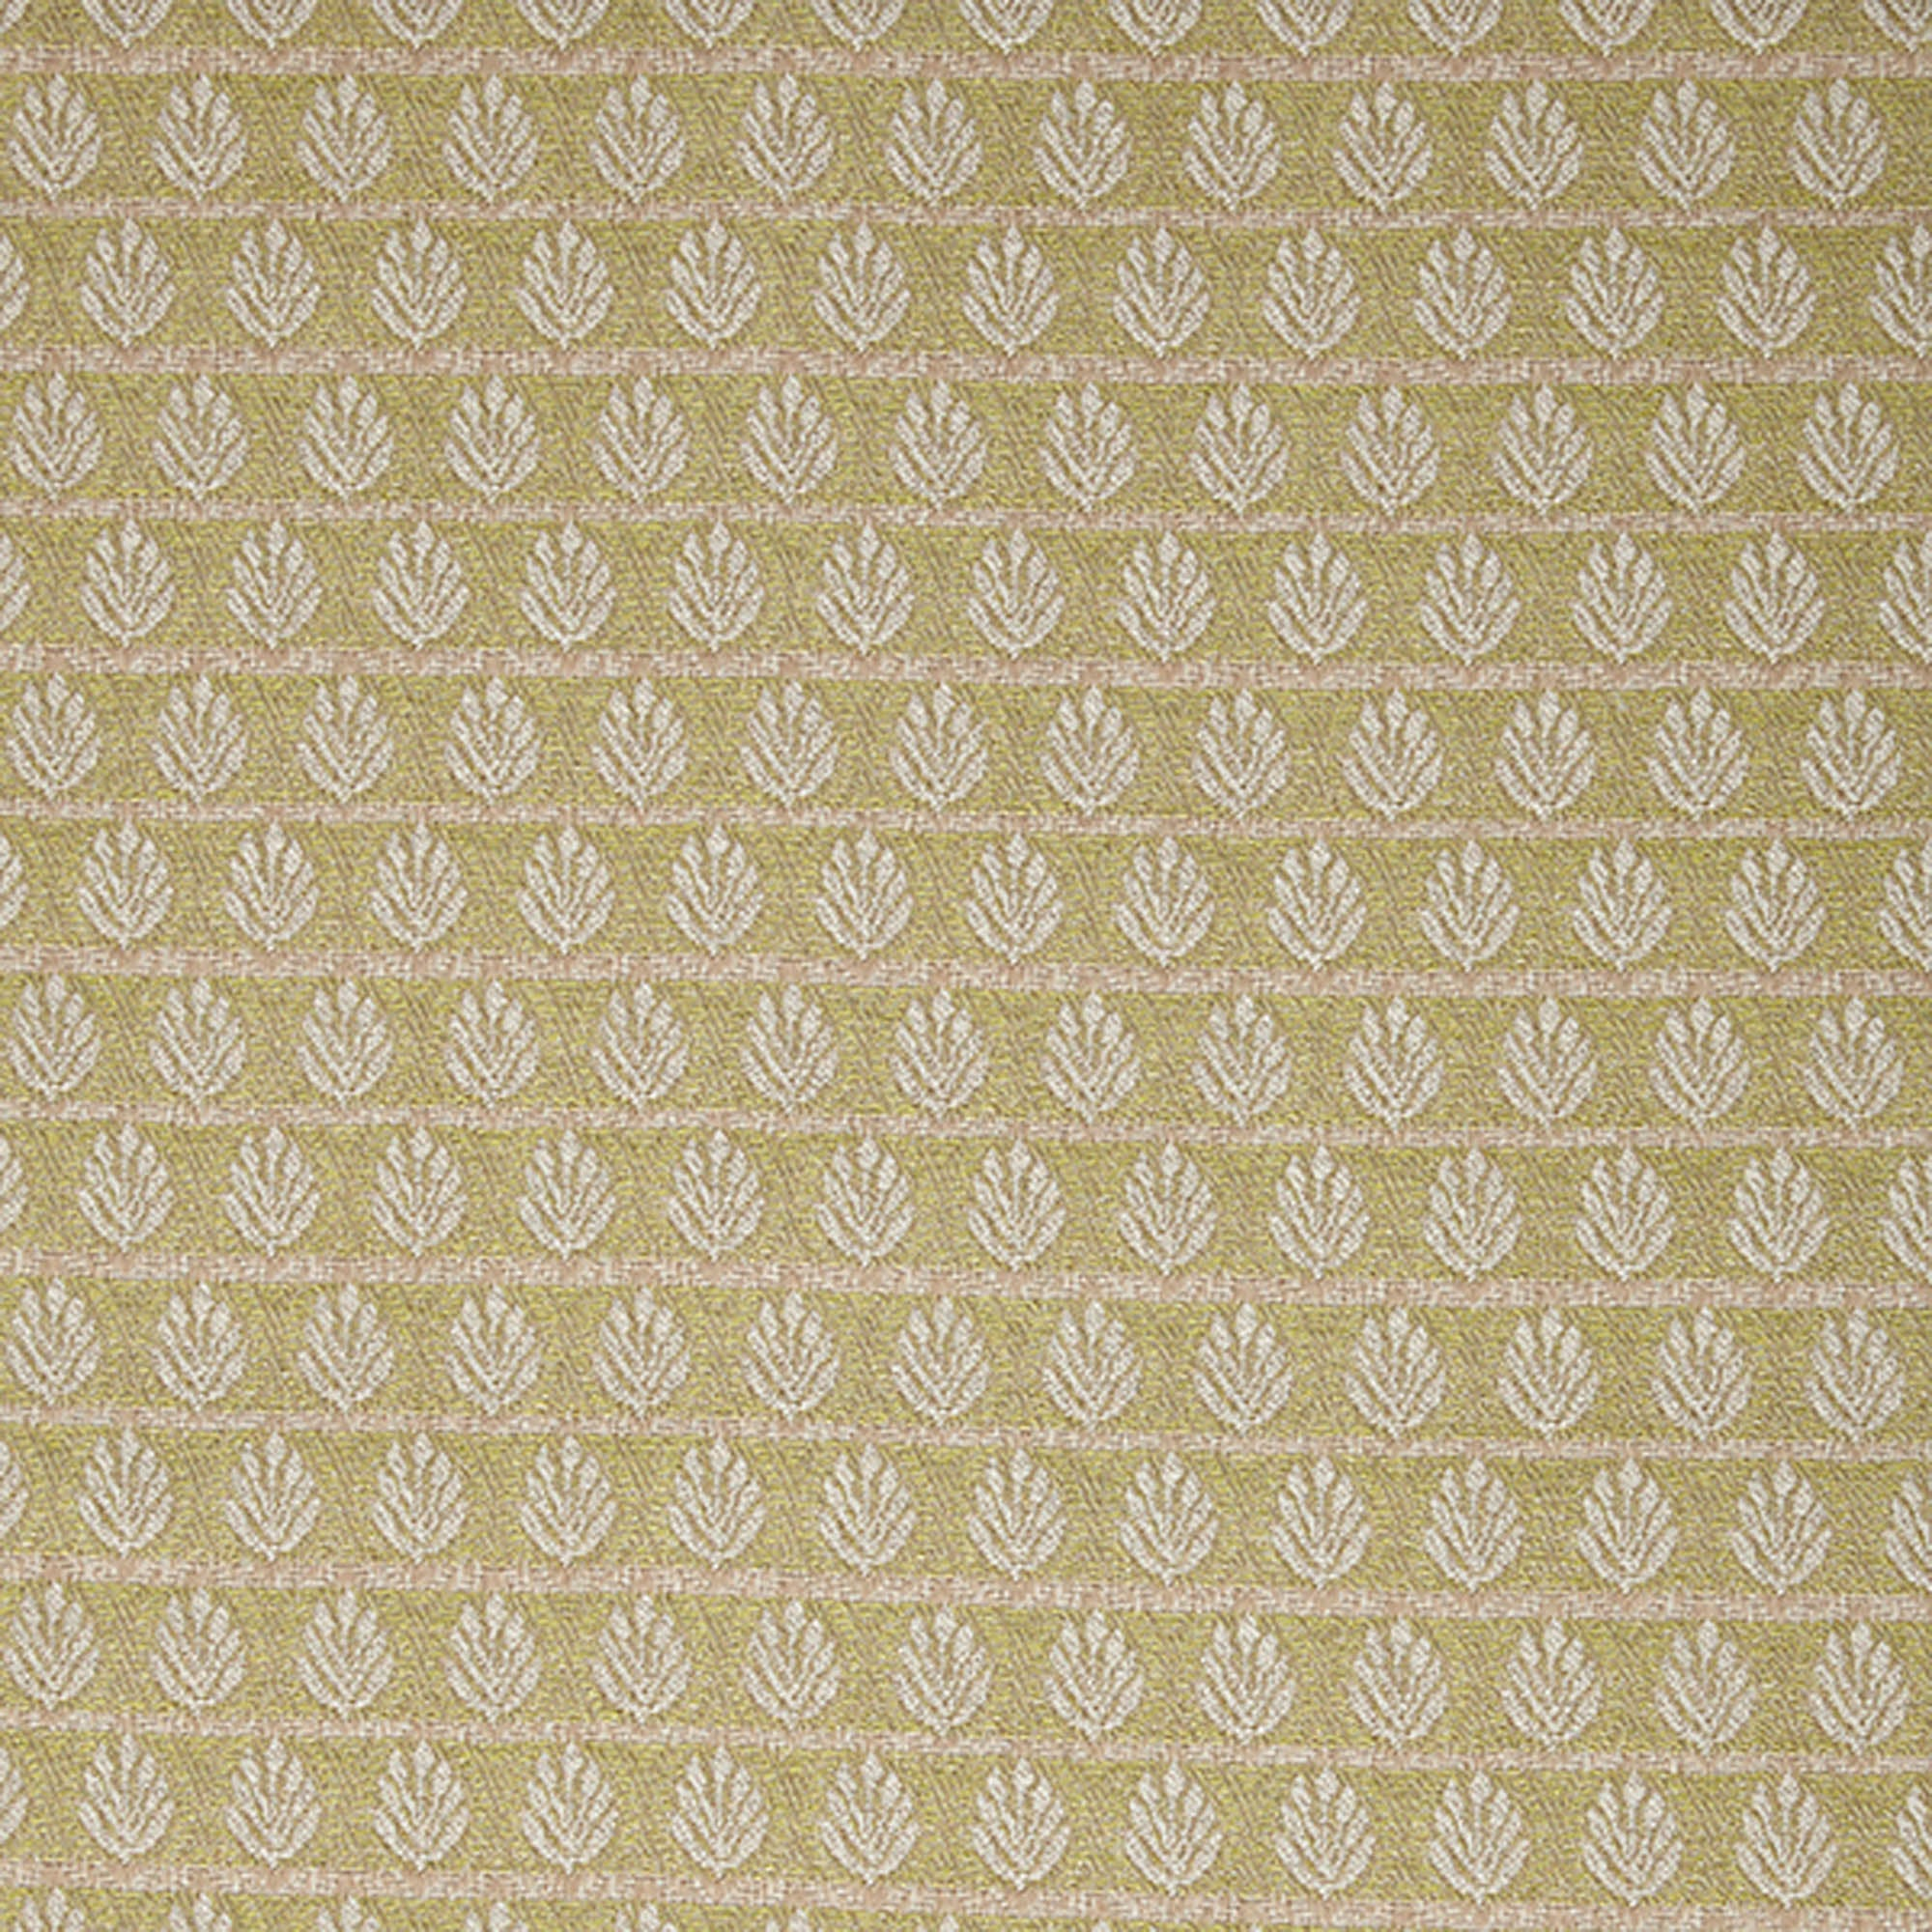 Photo of Sherwood willow fabric natural